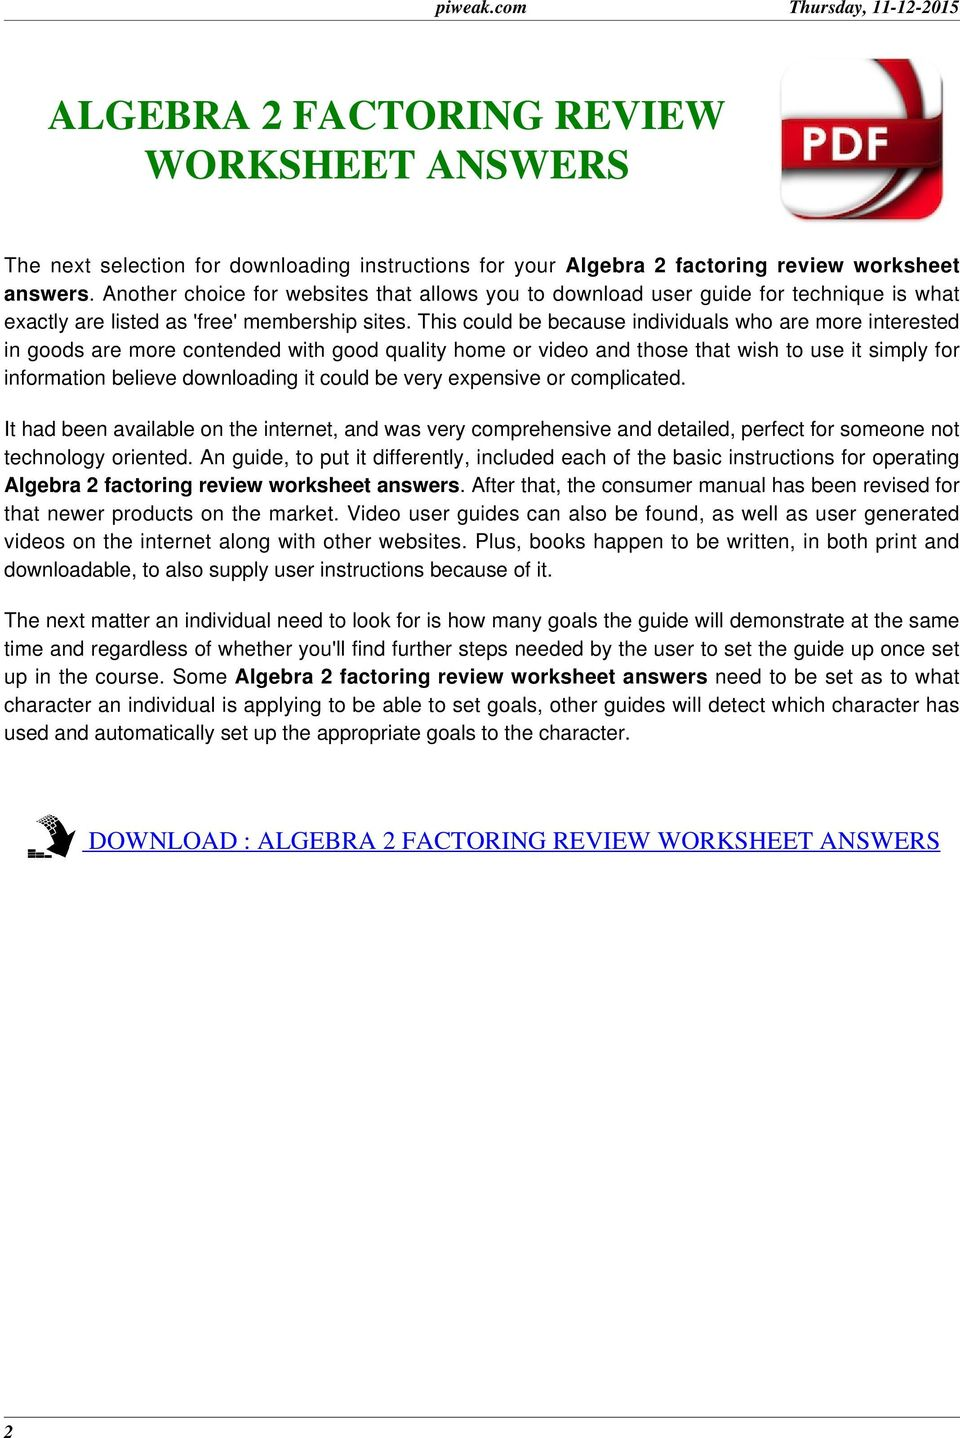 Algebra 2 Worksheets Factoring Polynomials | Homeshealth.info